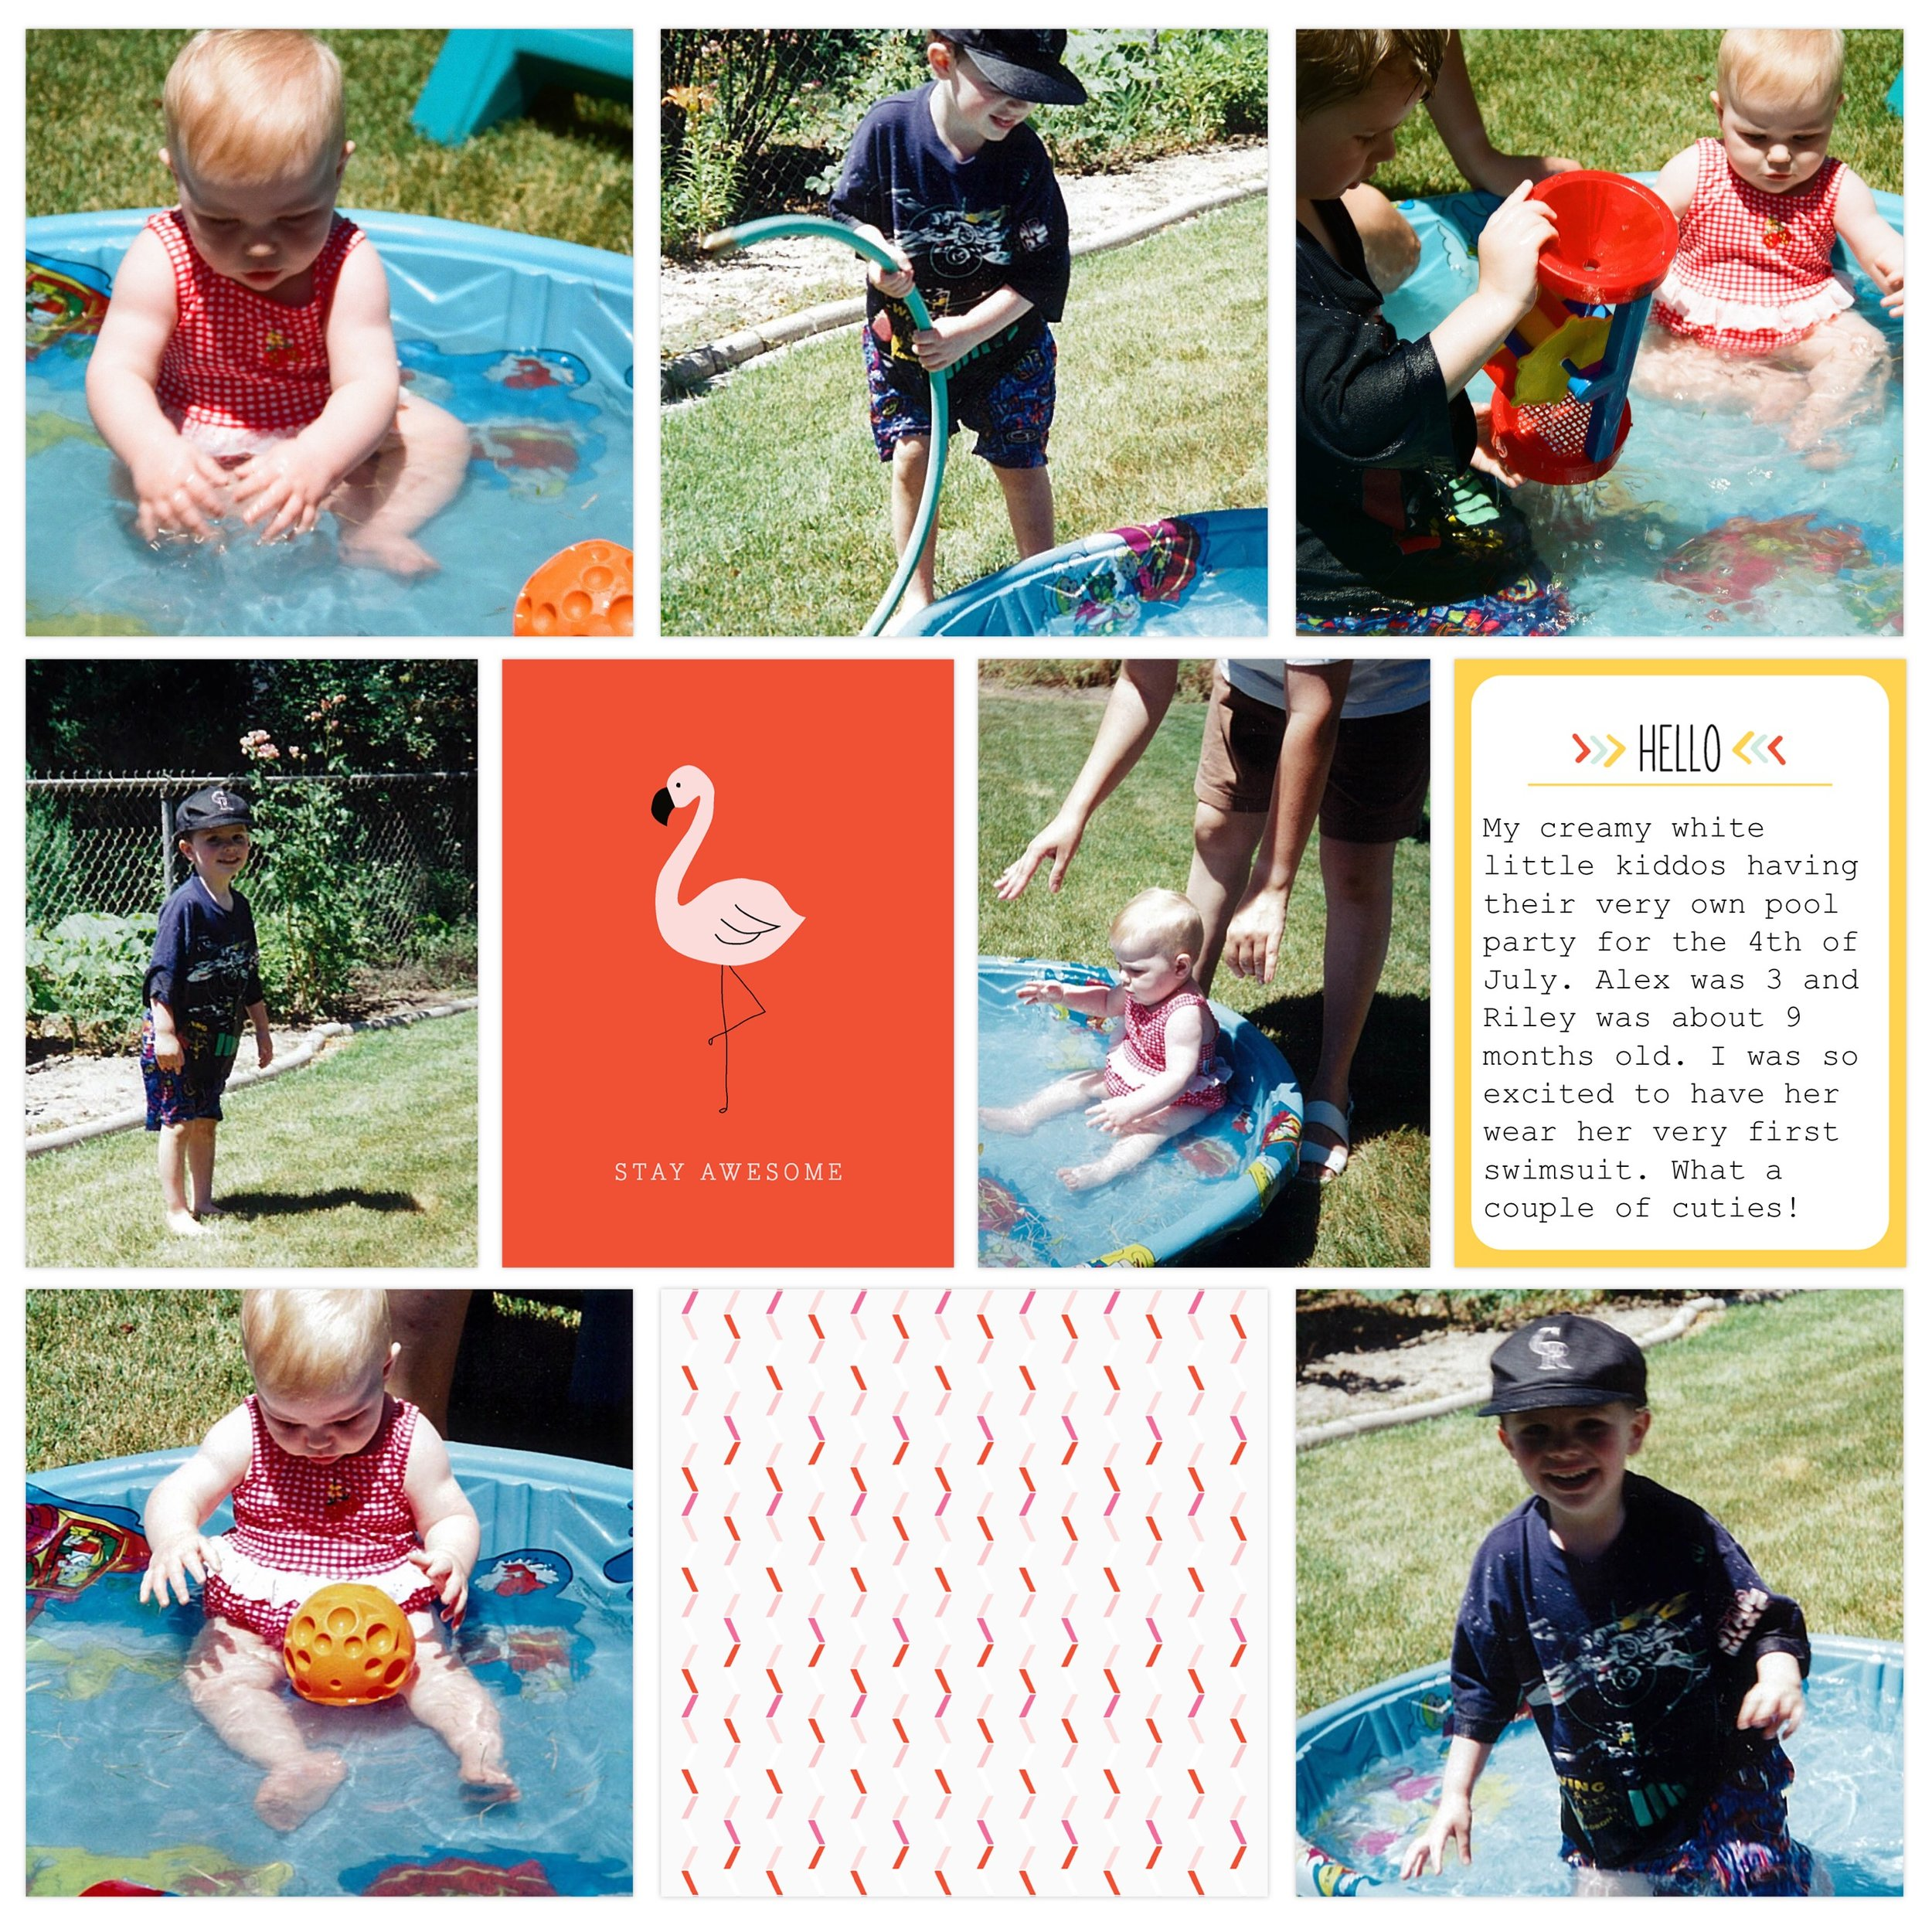 1997 swimming party in our backyard. Page created in Project Life App. Cards from Fine & Dandy edition (in app purchase).